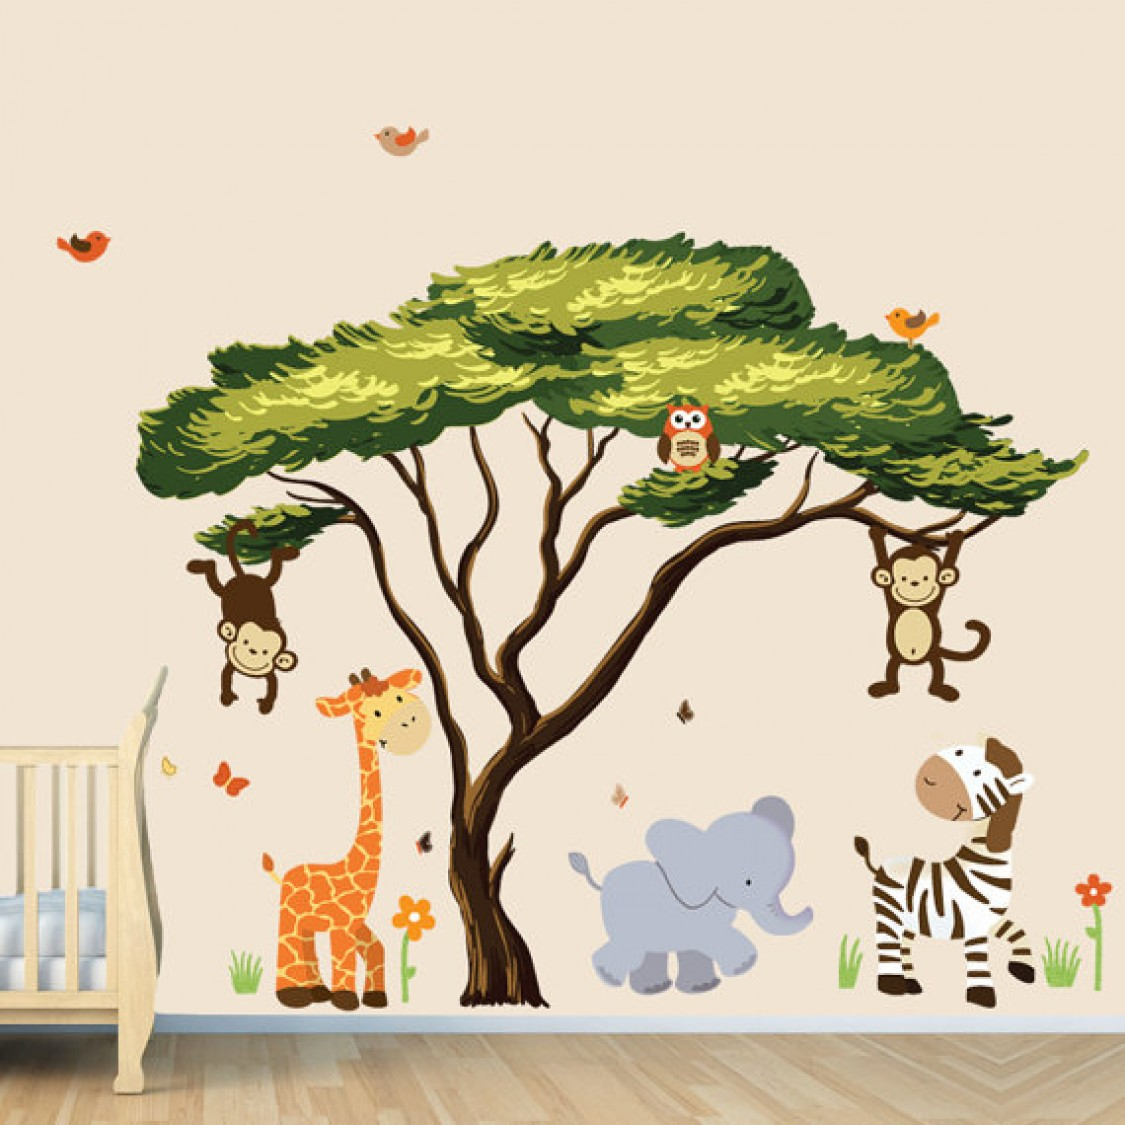 Large african tree decal and jungle animal wall decals for children large african tree decal and stickers jungle for kids amipublicfo Choice Image